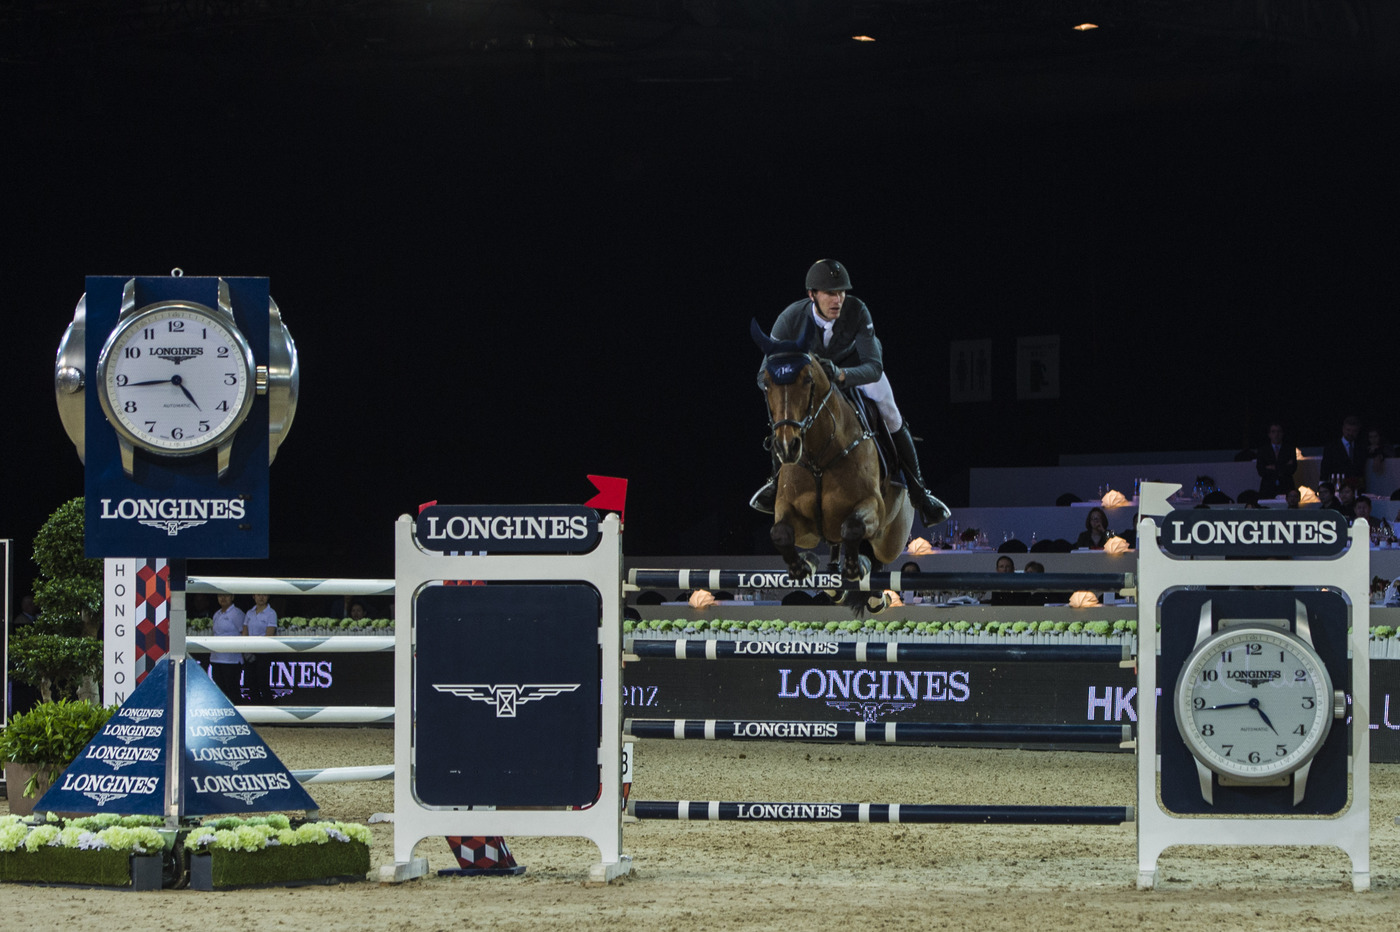 Longines Show Jumping Event: Marco Kutscher achieved the incredible feat of winning the bonus of the Longines Masters 3